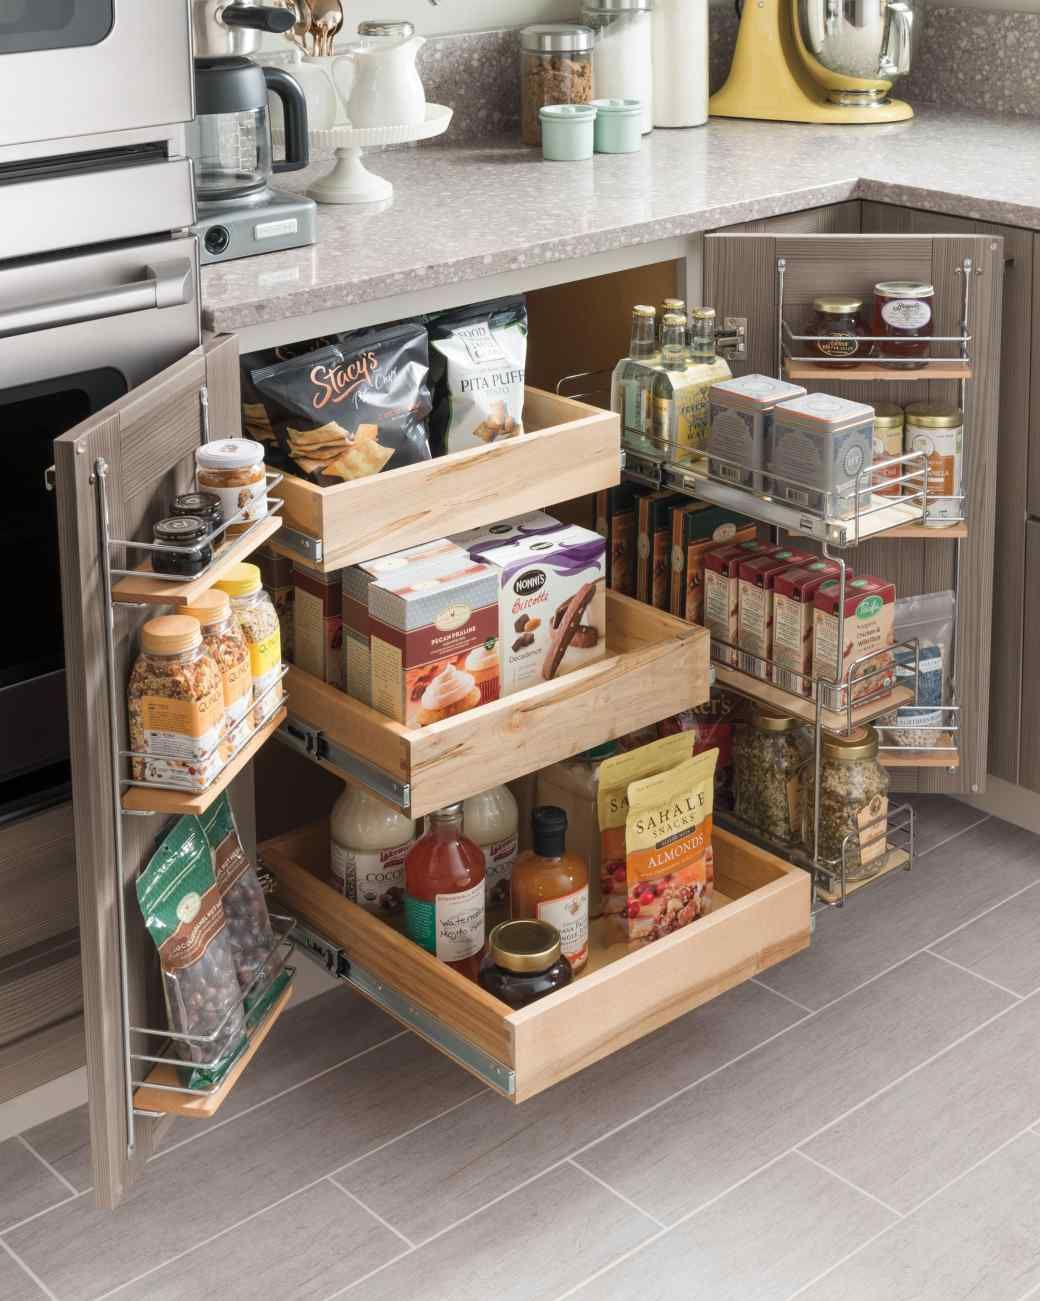 small kitchen storage ideas for a more efficient space storage ideas organizing and storage on kitchen organization for small spaces id=75812